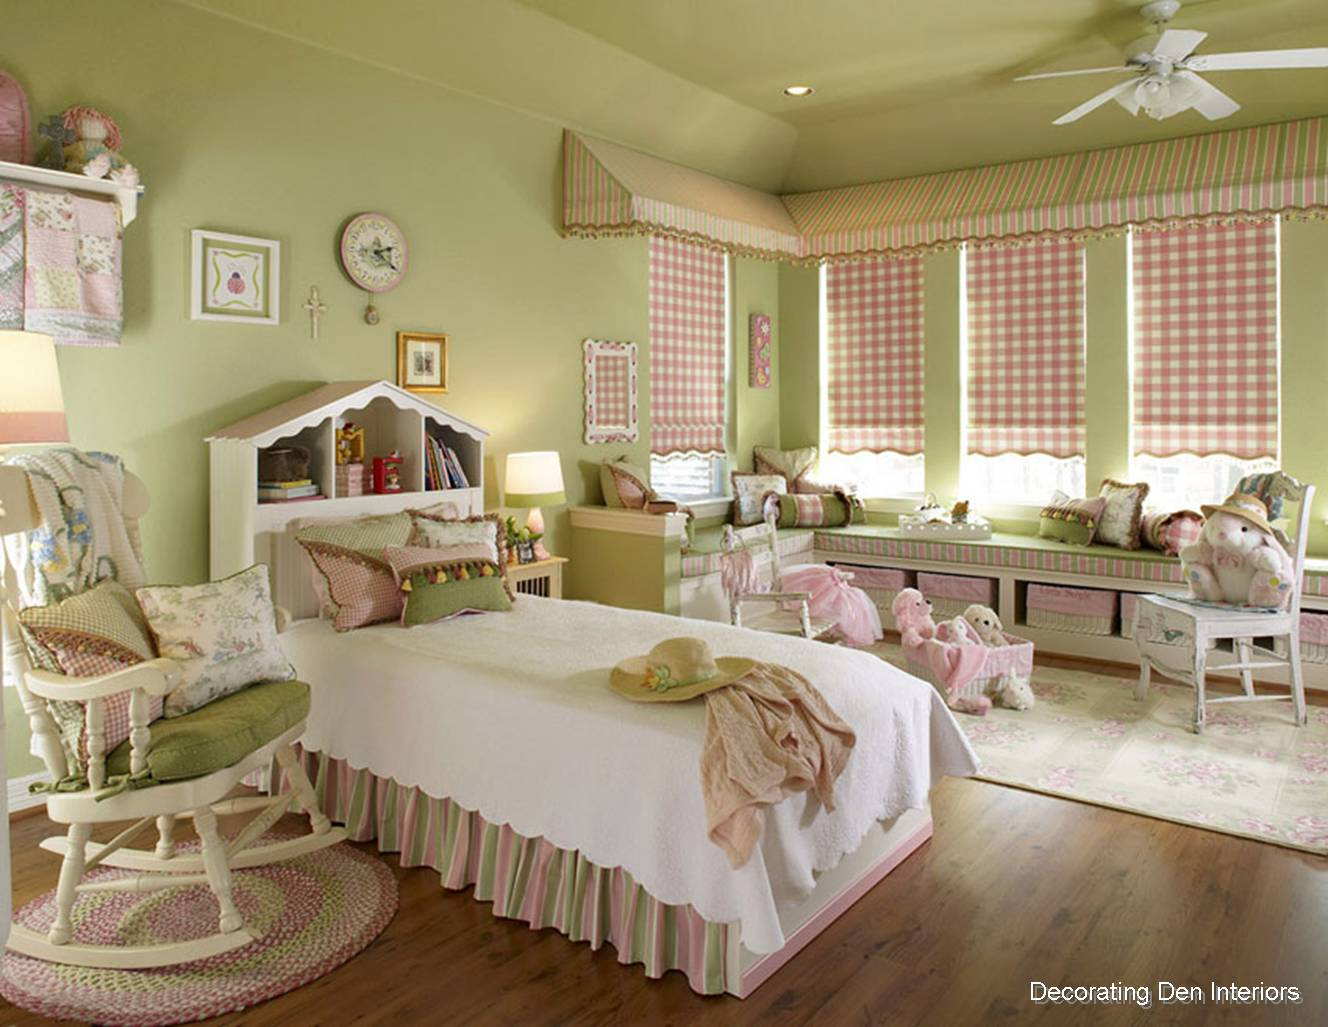 Tips for Decorating Kid's Rooms | Devine Decorating Results for ...